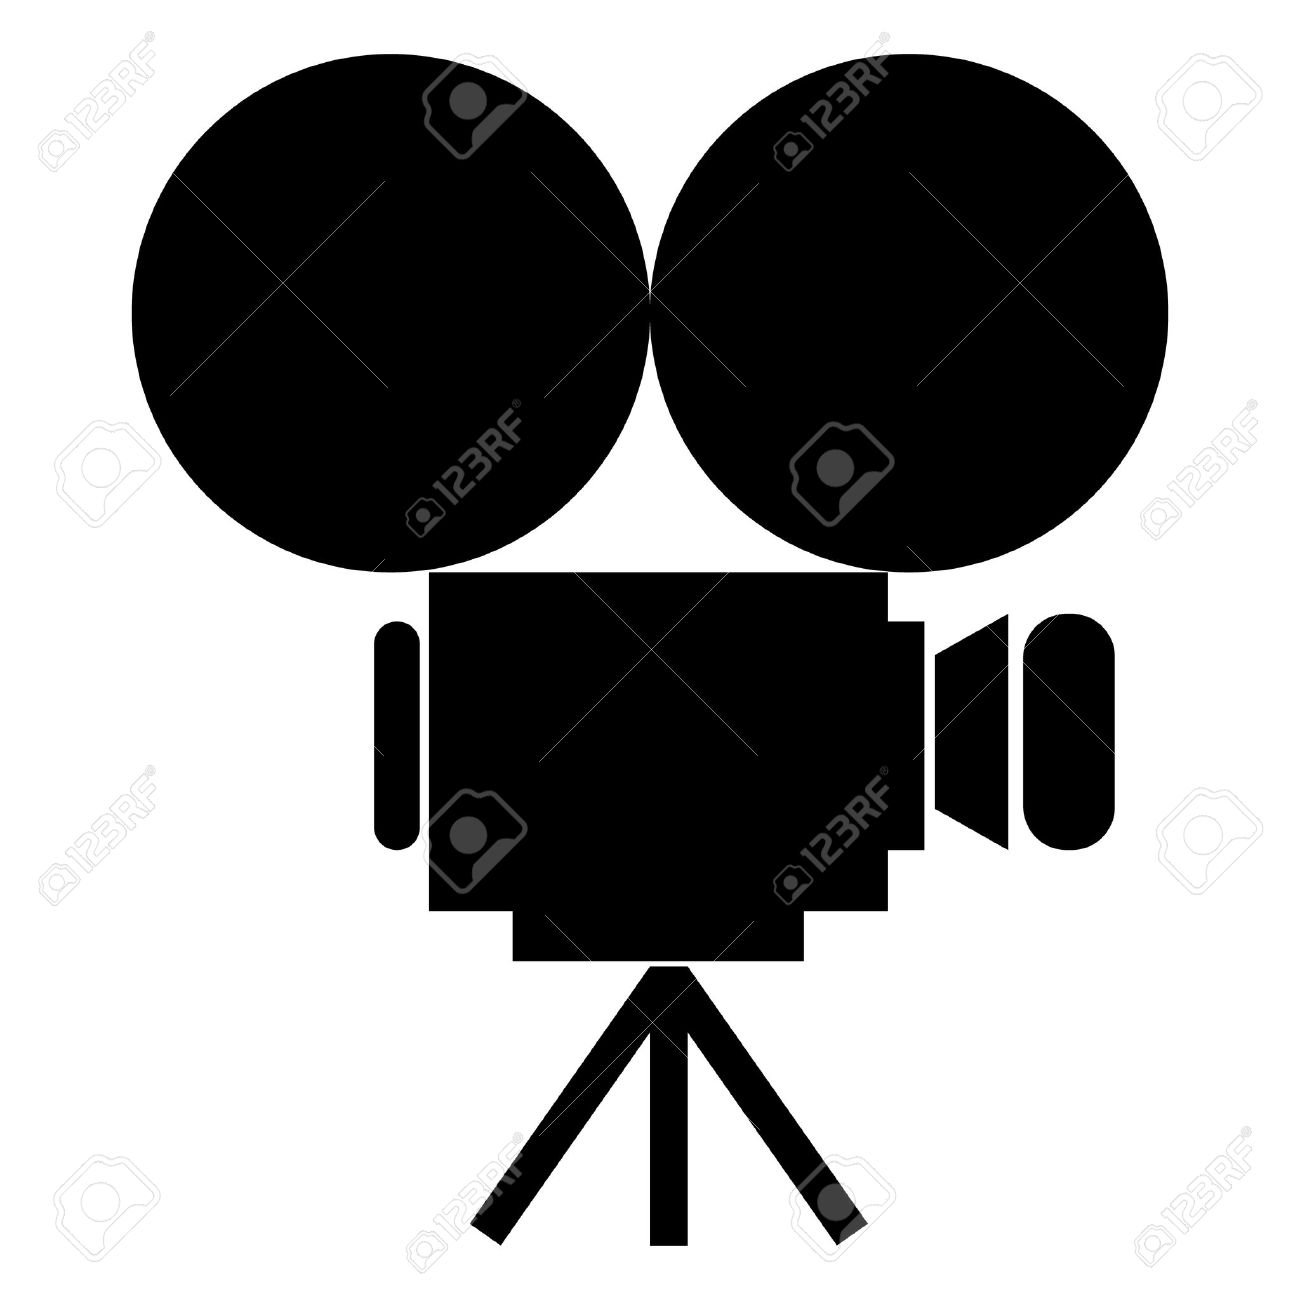 movie camera icon Stock Vector - 10287329